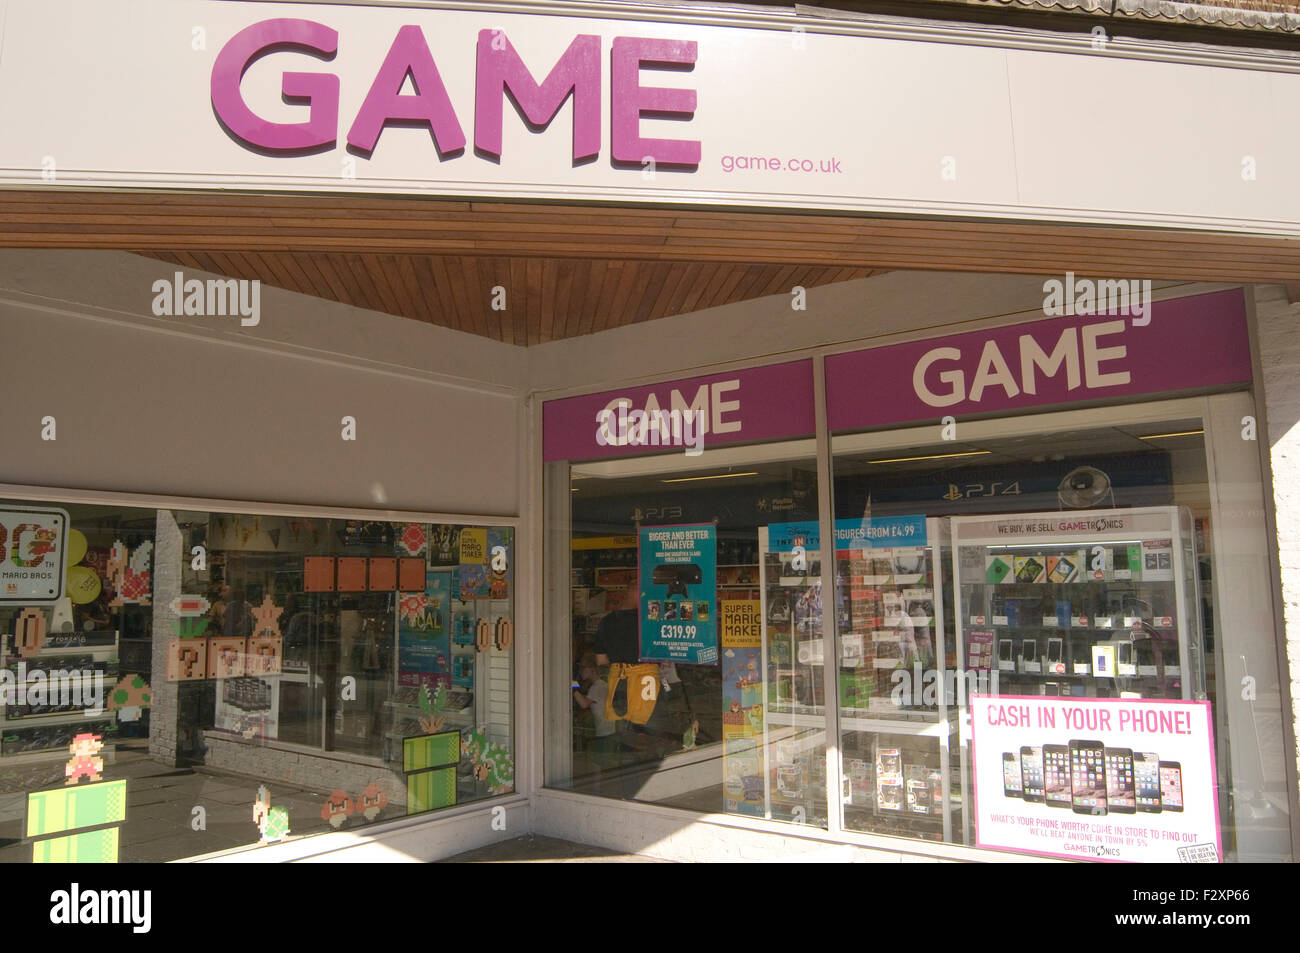 game uk secondhand games and electrical goods retailer shop shops - Stock Image